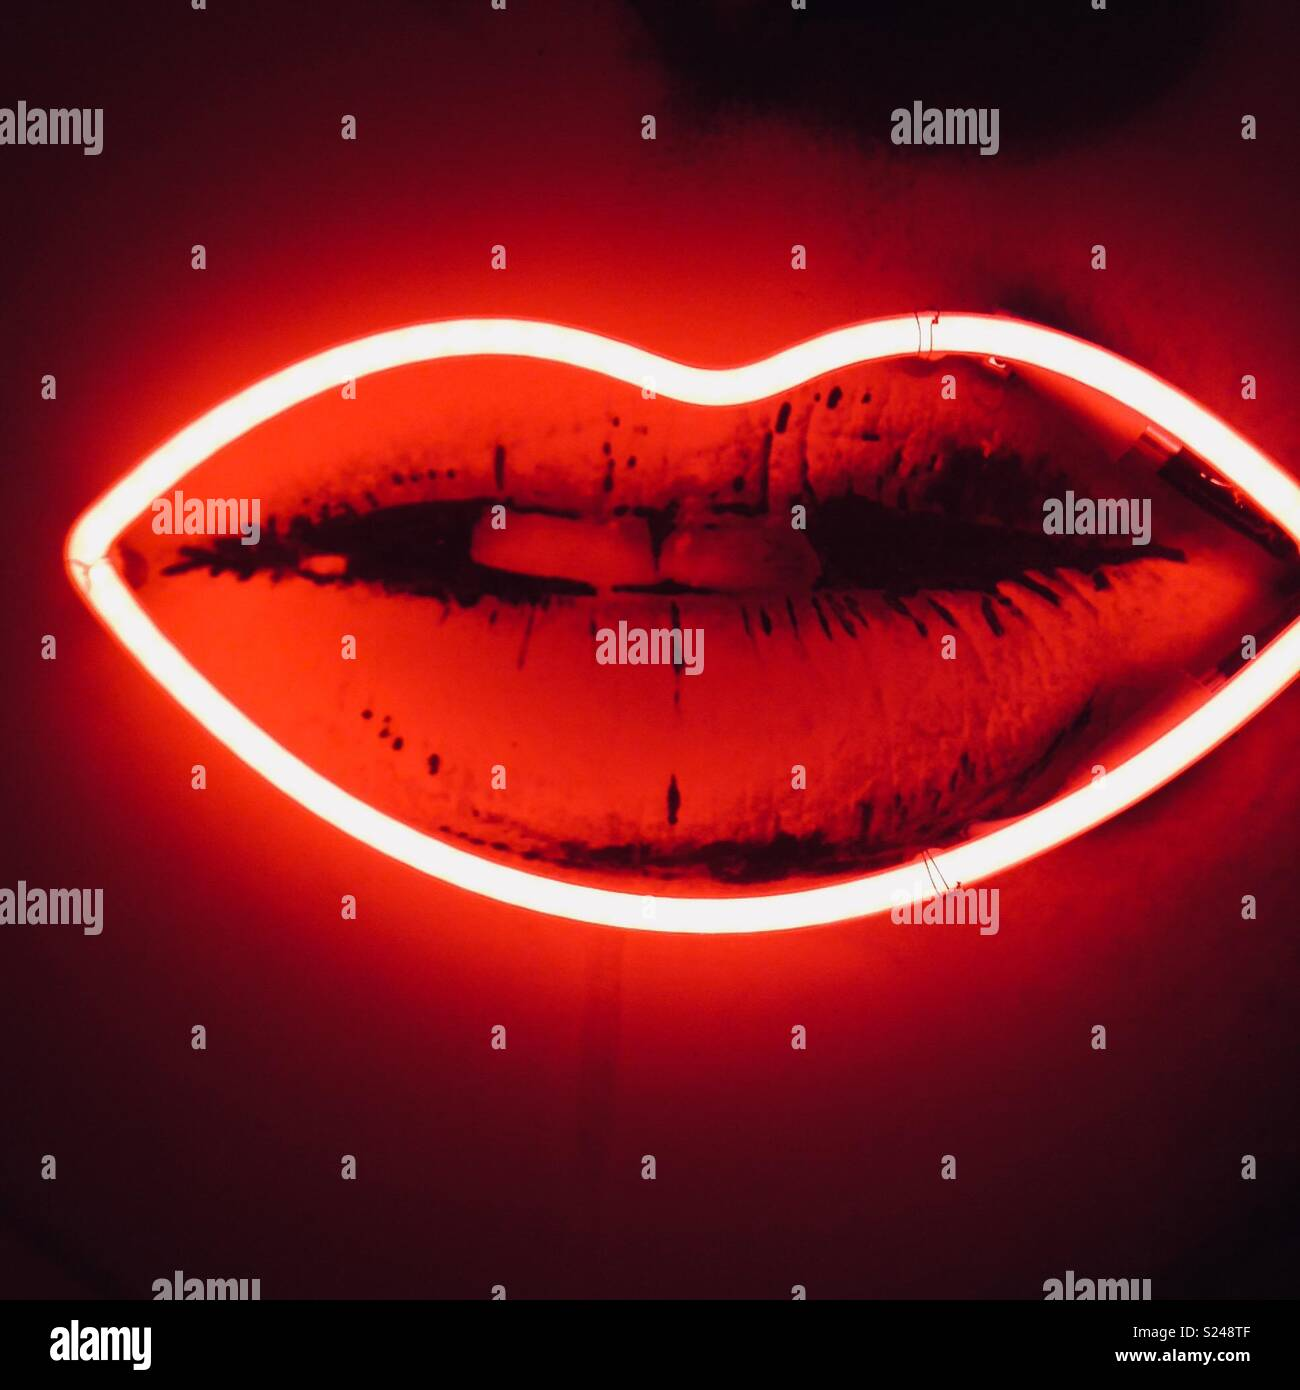 Neon red lips - Stock Image